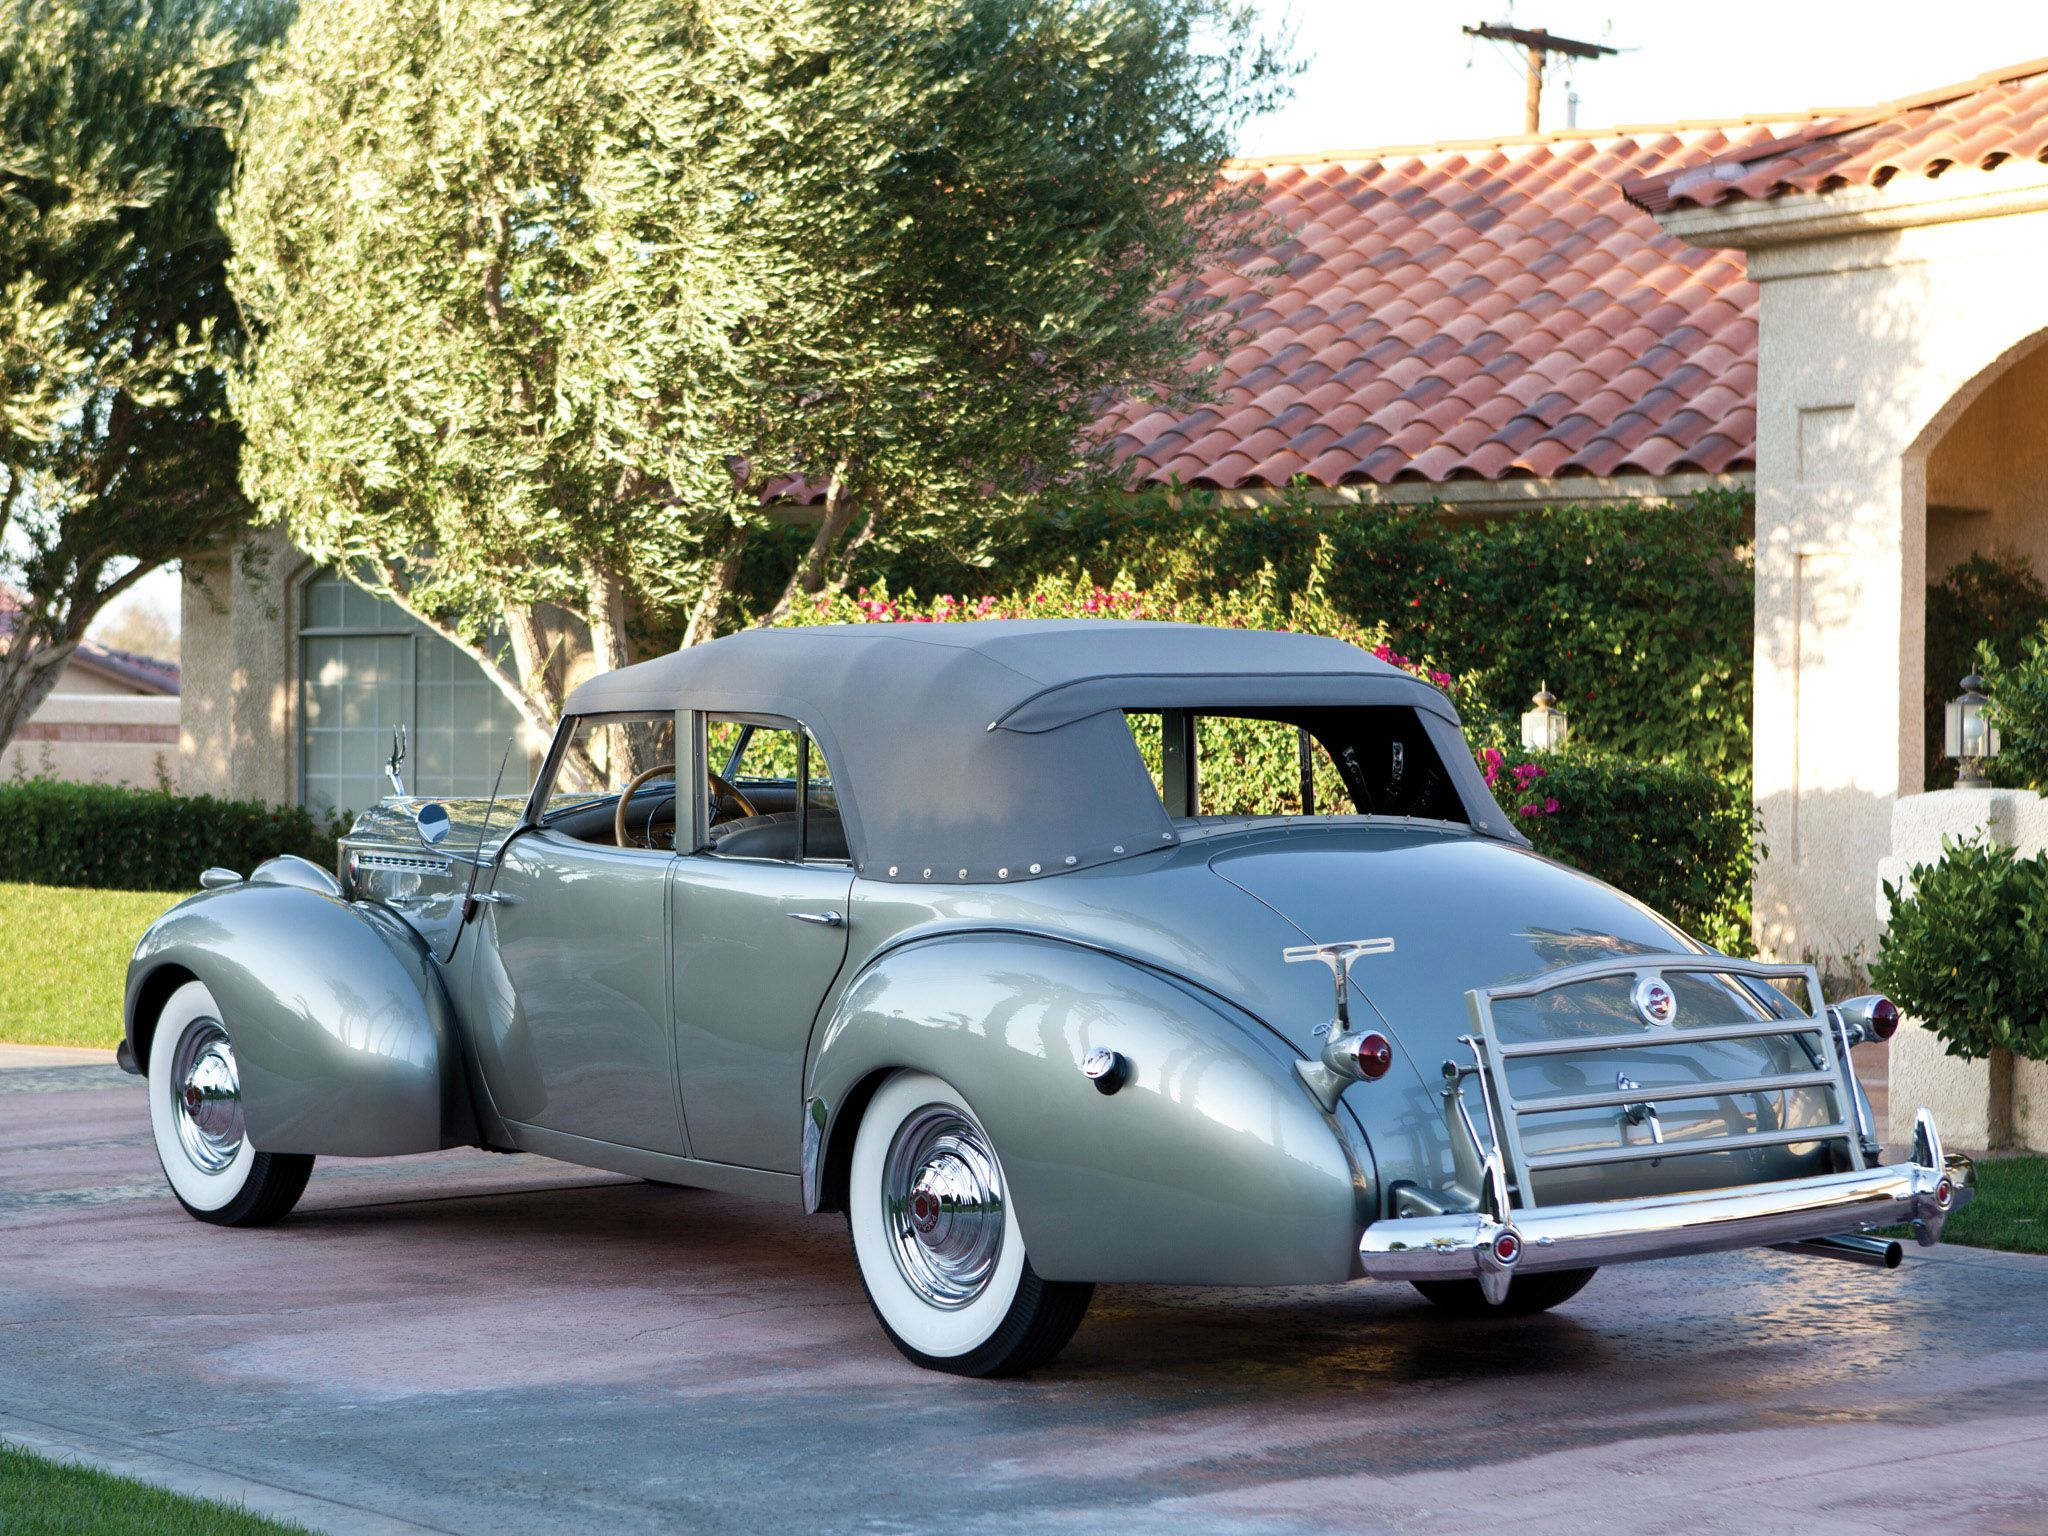 1940 Packard 180 Super Eight Convertible Sedan | Packards Only ...